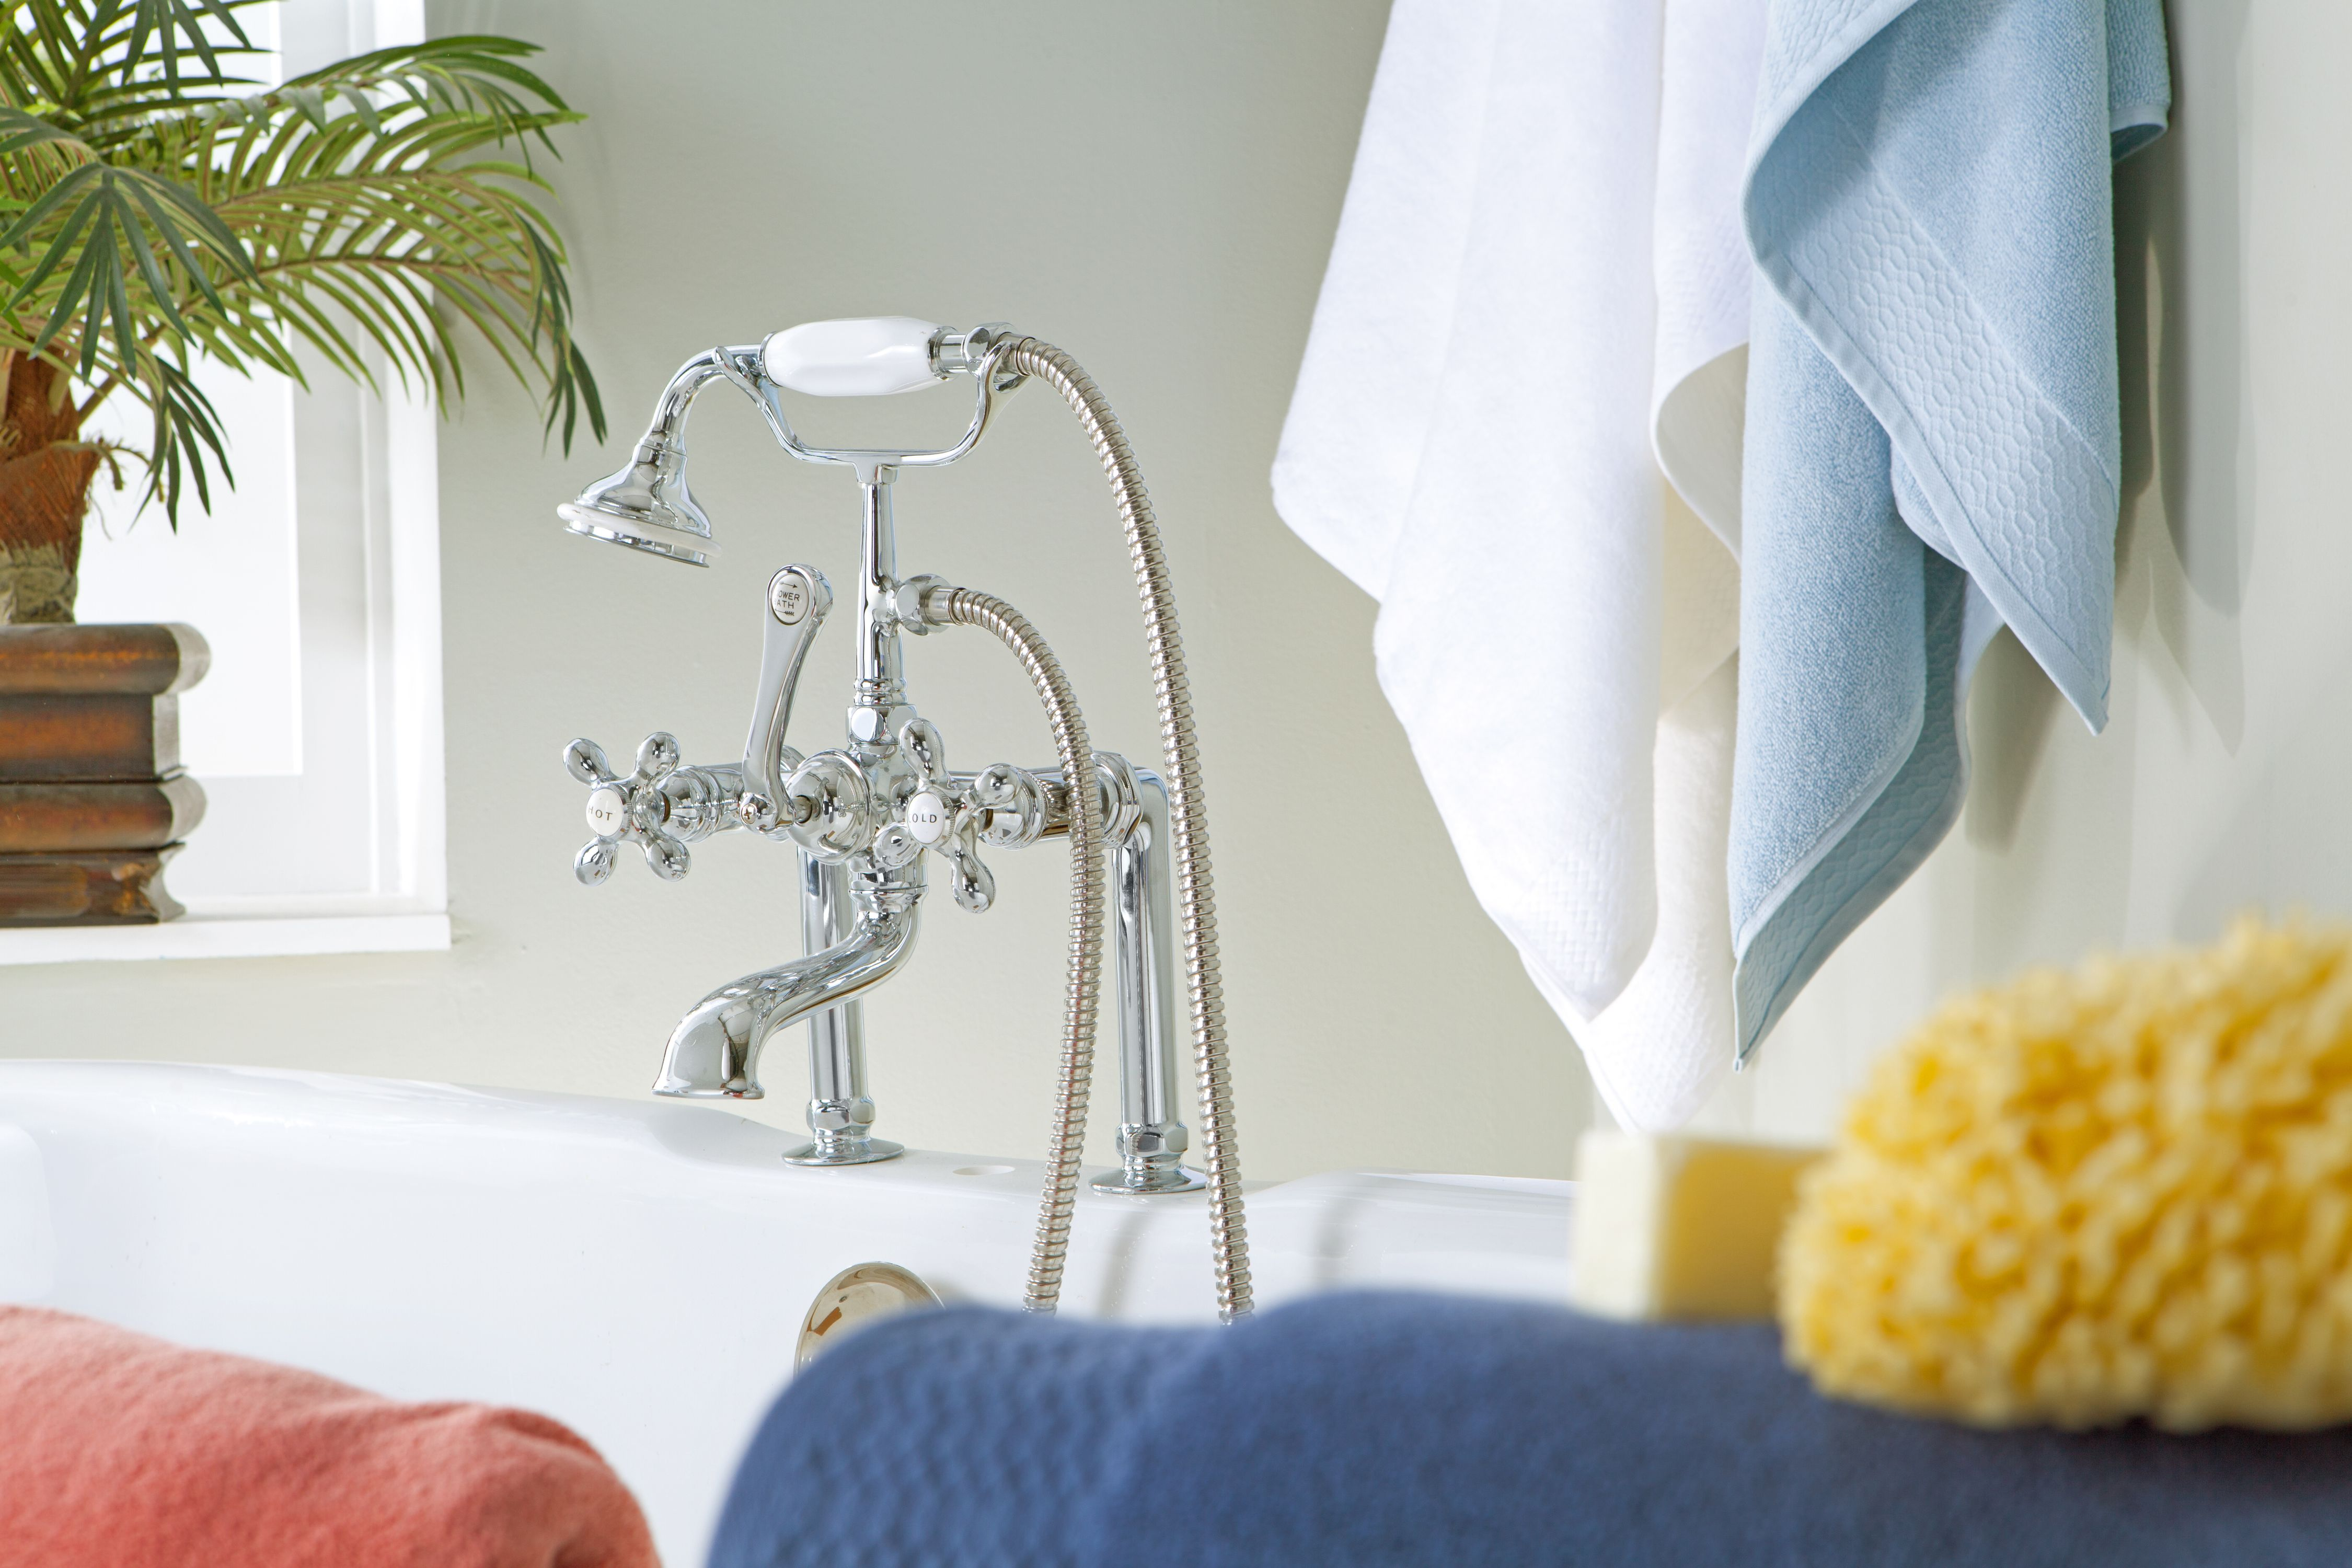 IMG_0054 faucet switch.jpg